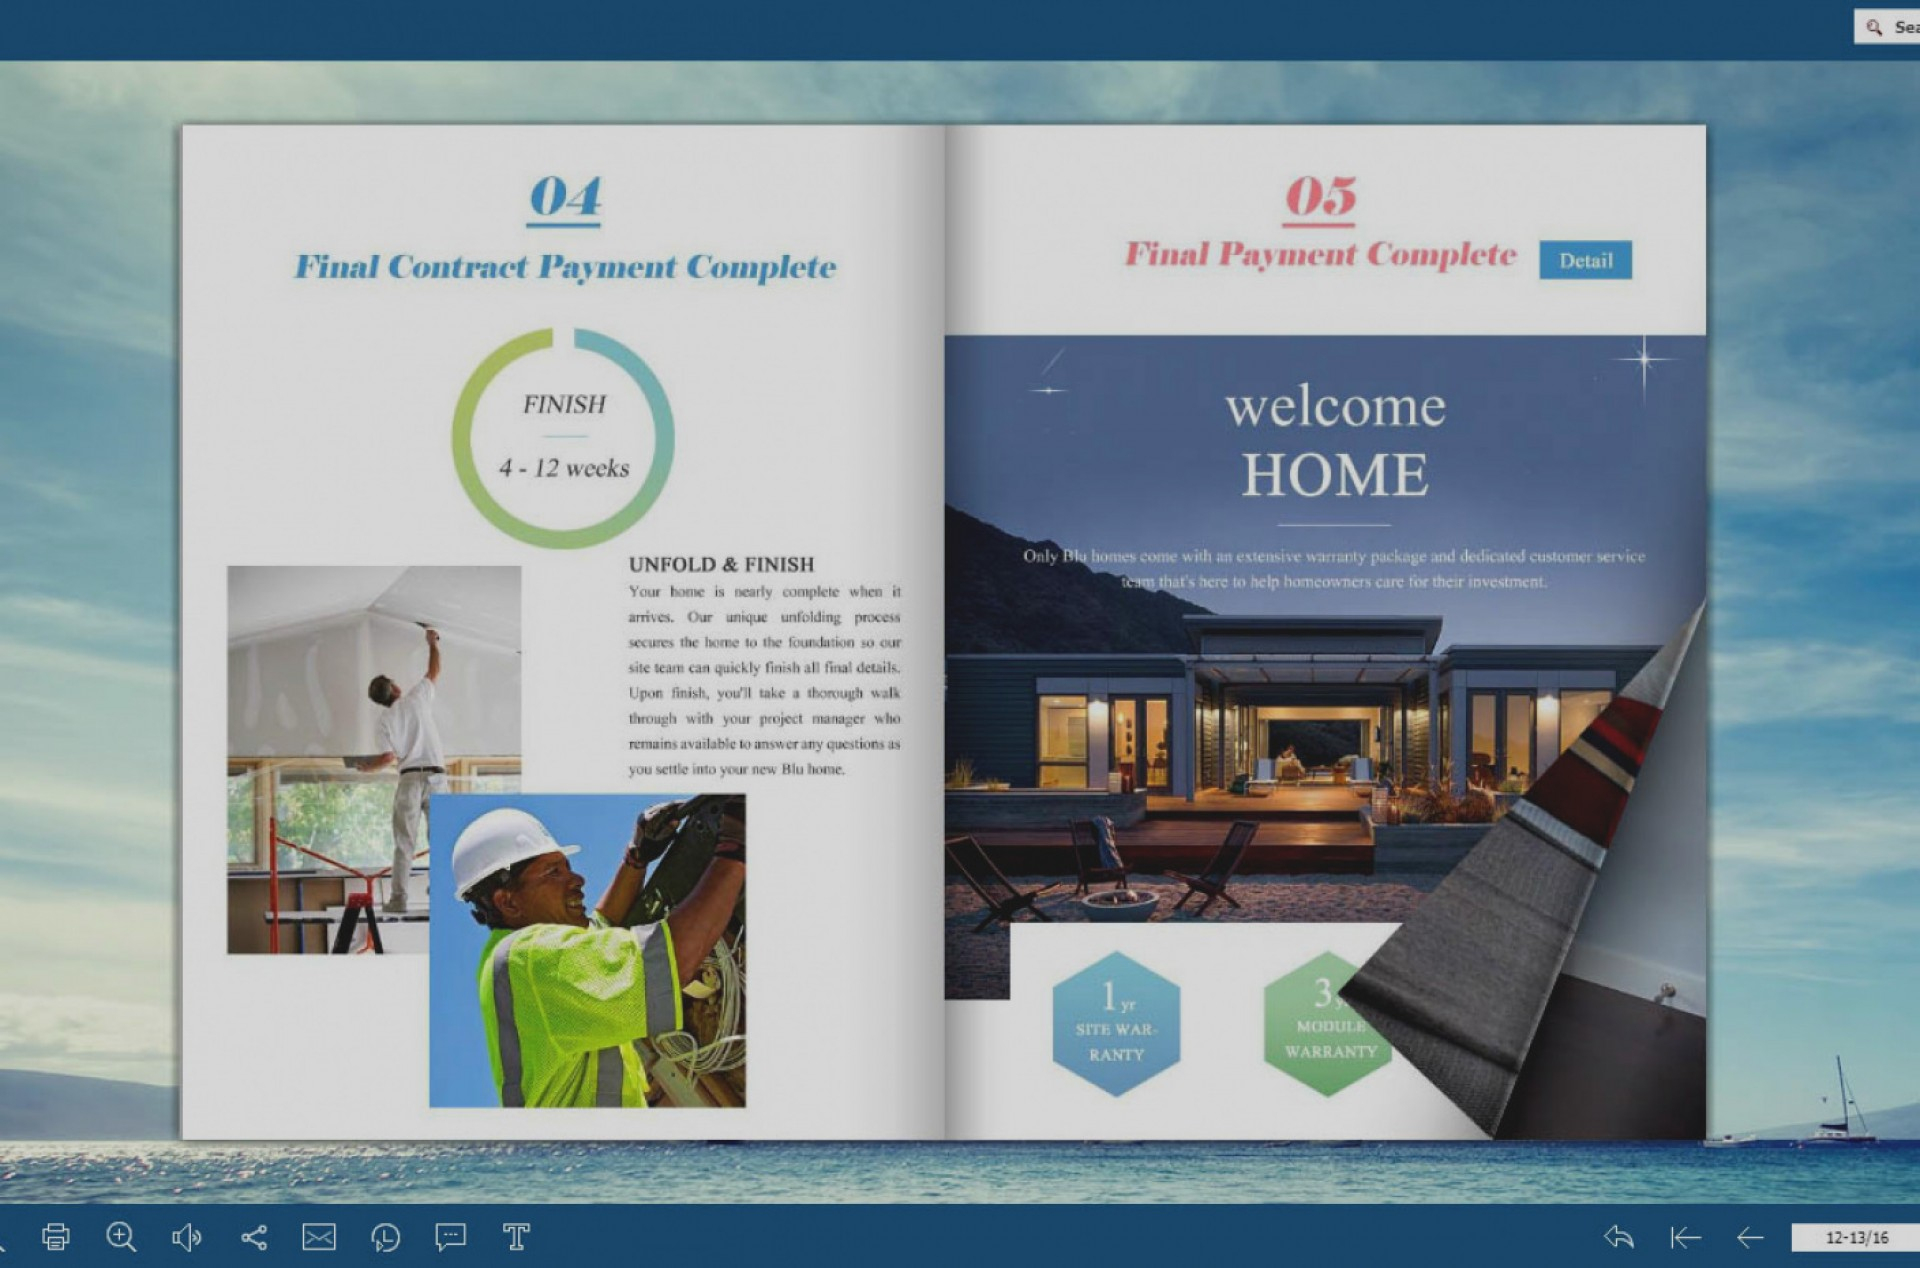 002 Free Online Brochure Templates Template Ideas Pictures Maker - Online Brochure Maker Free Printable